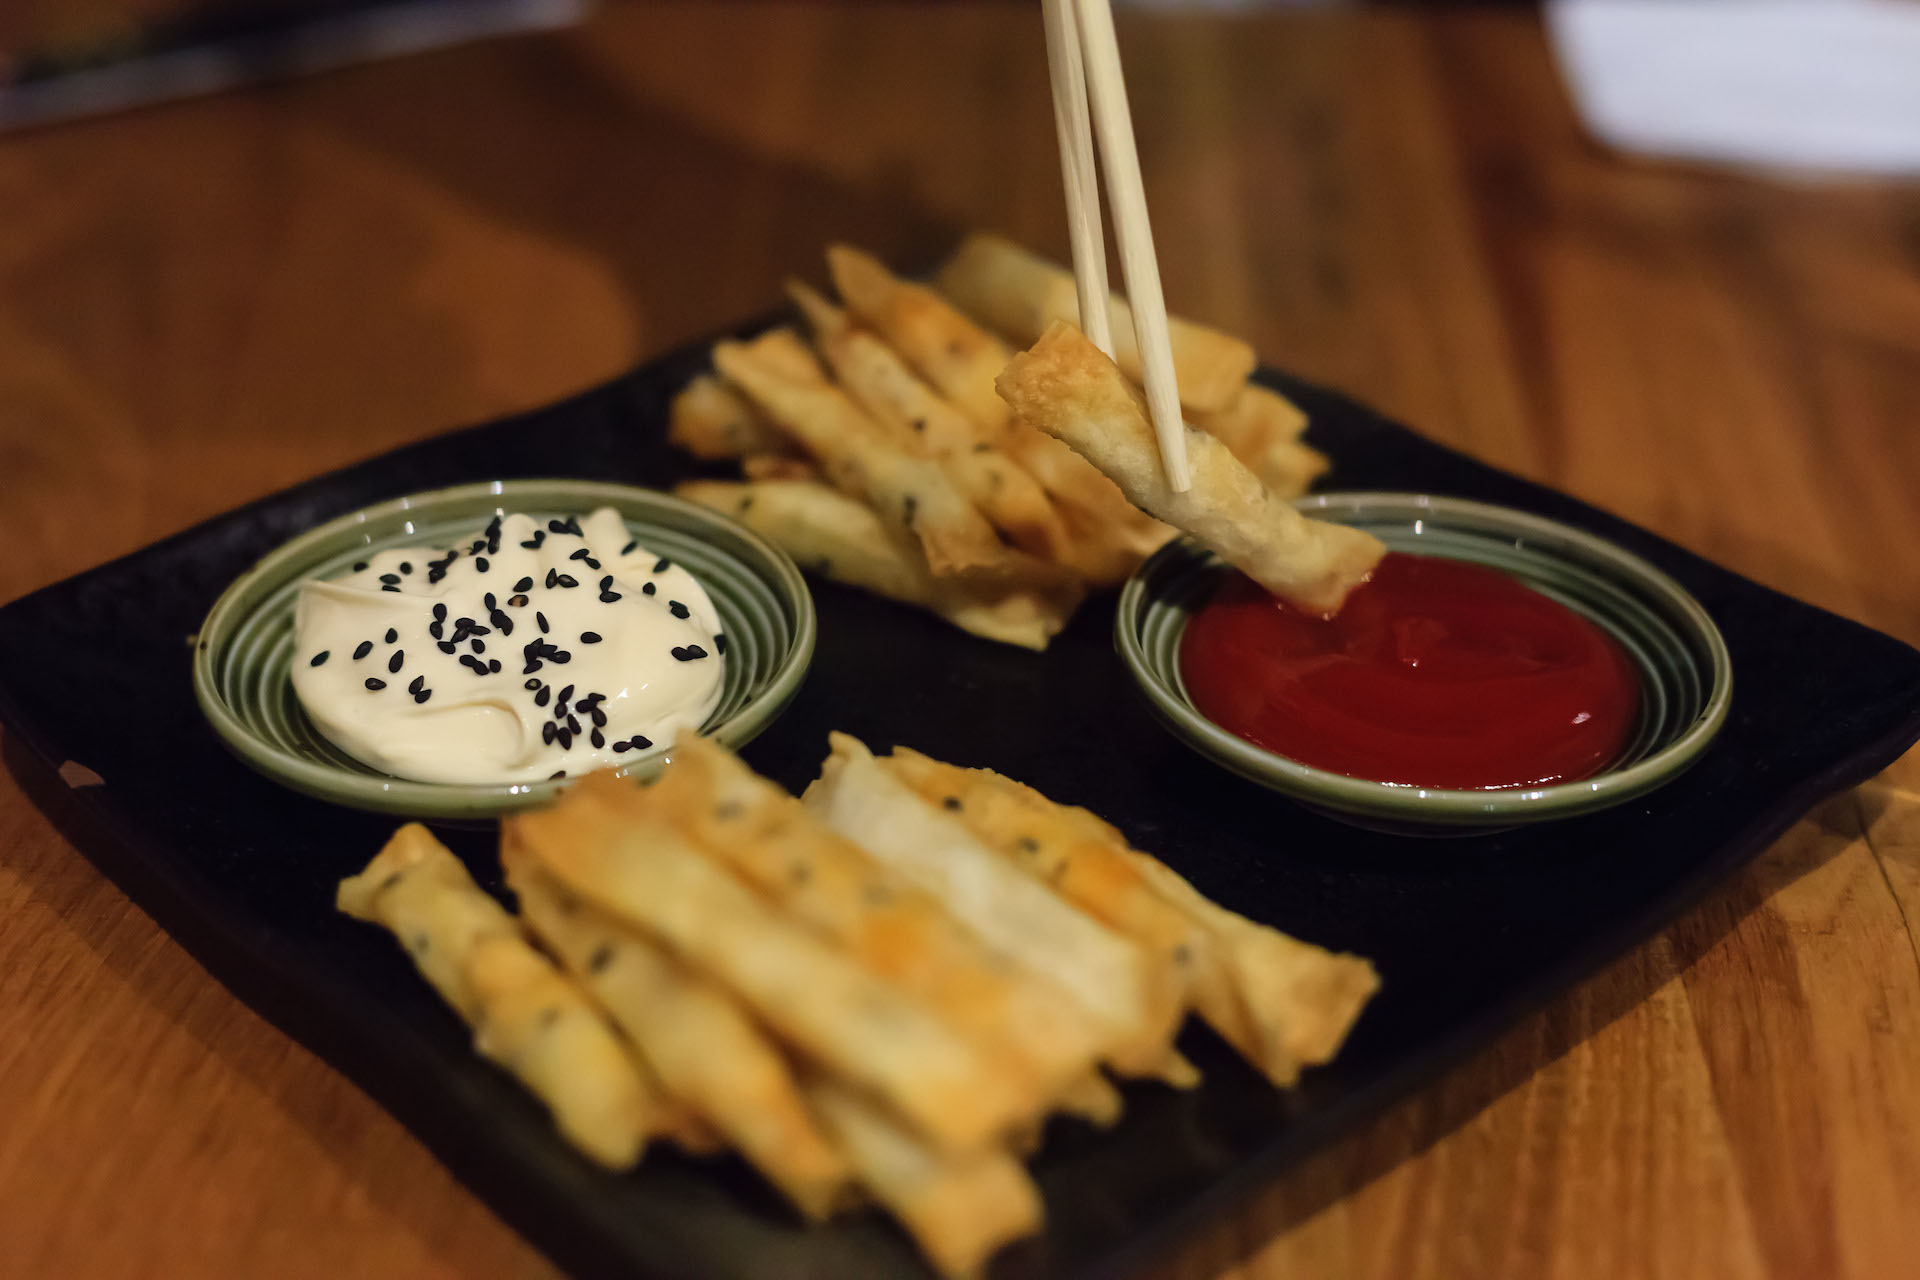 The Uchiwa fries are a popular appetizer.